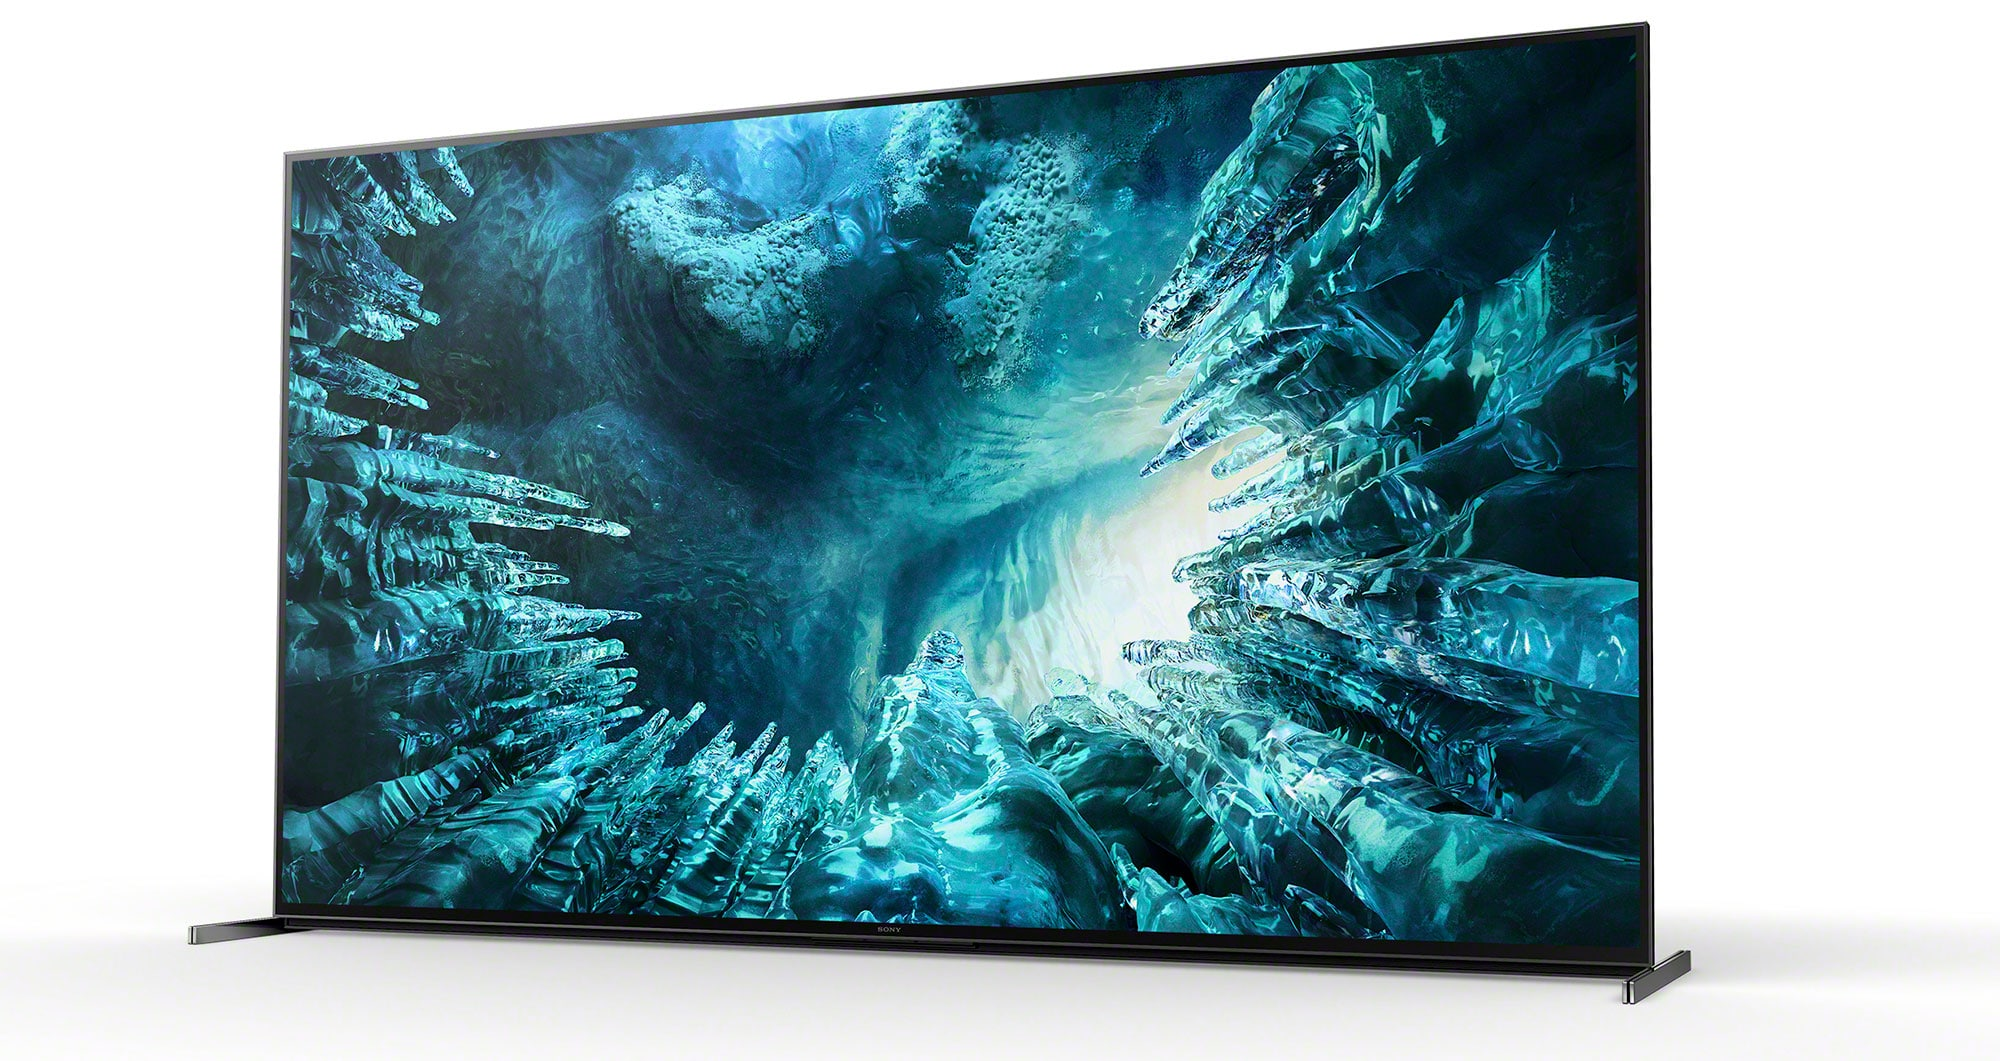 Sony brands new Bravia TVs as PS5 ready with 8K, 120fps support